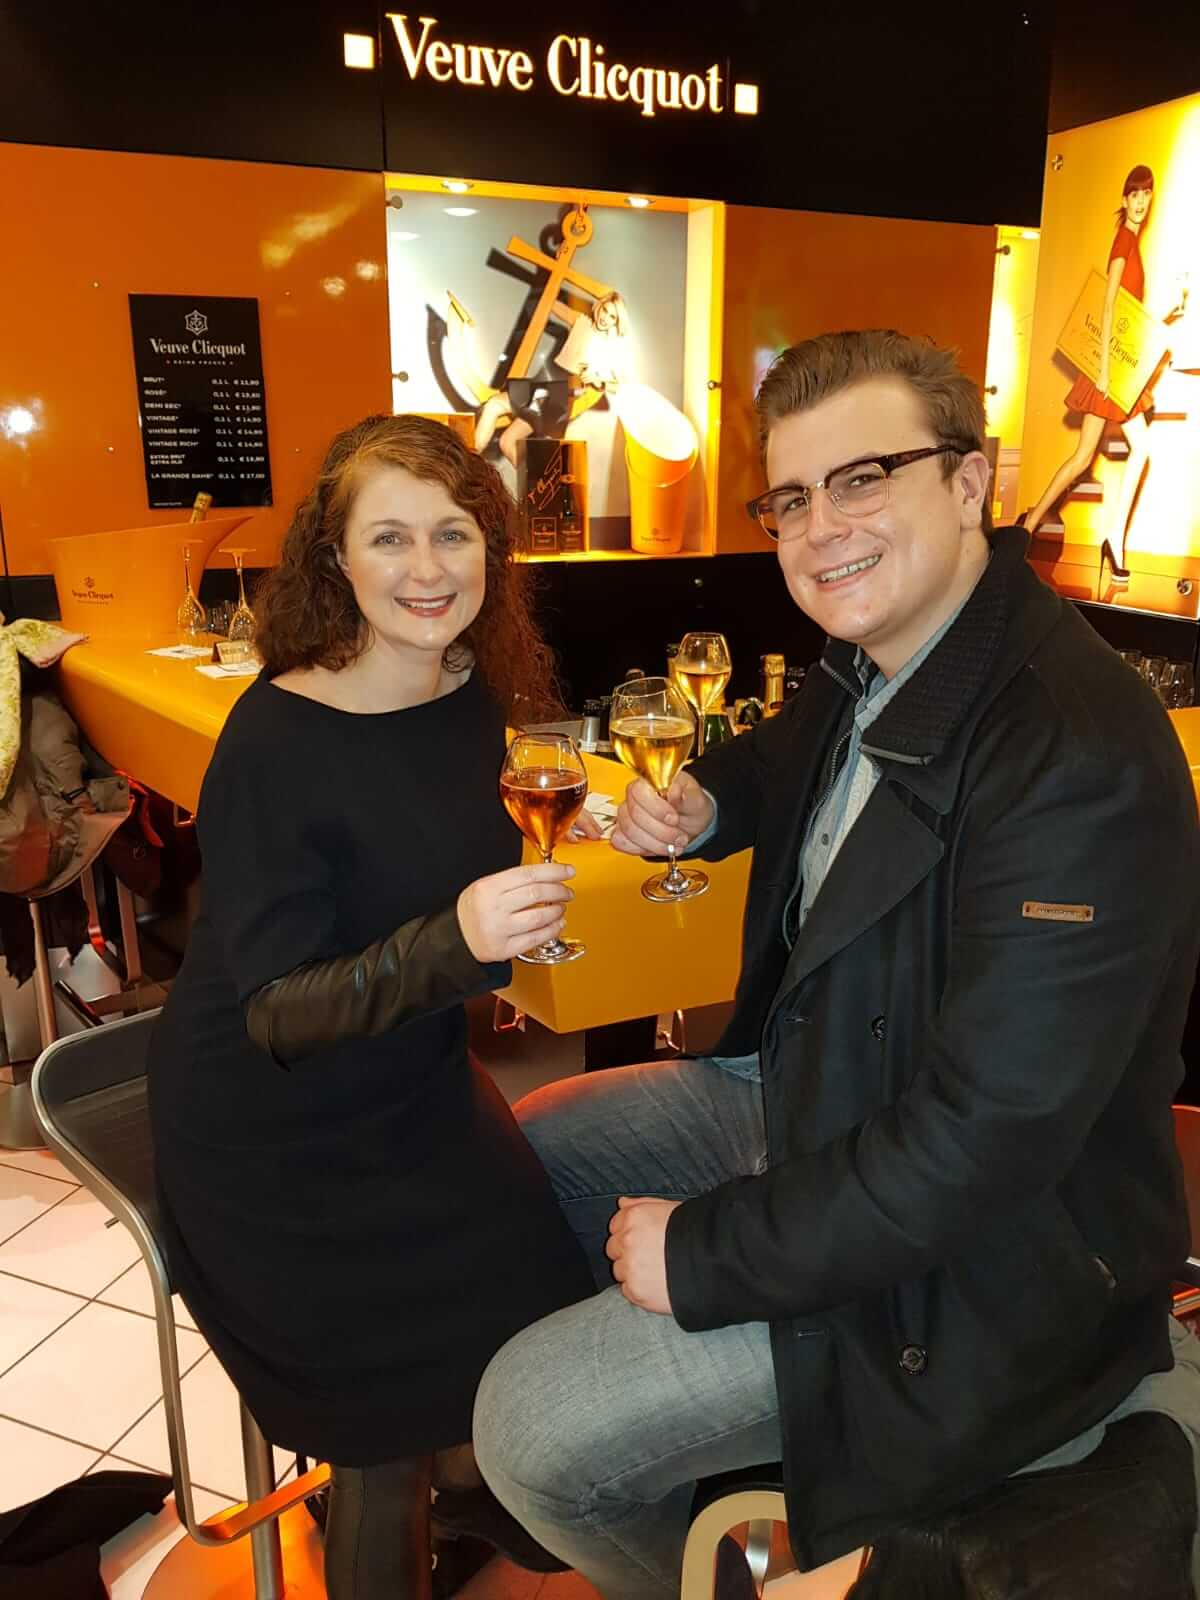 Champagner in der Veuve Clicquot Bar im KaDeWe Berlin